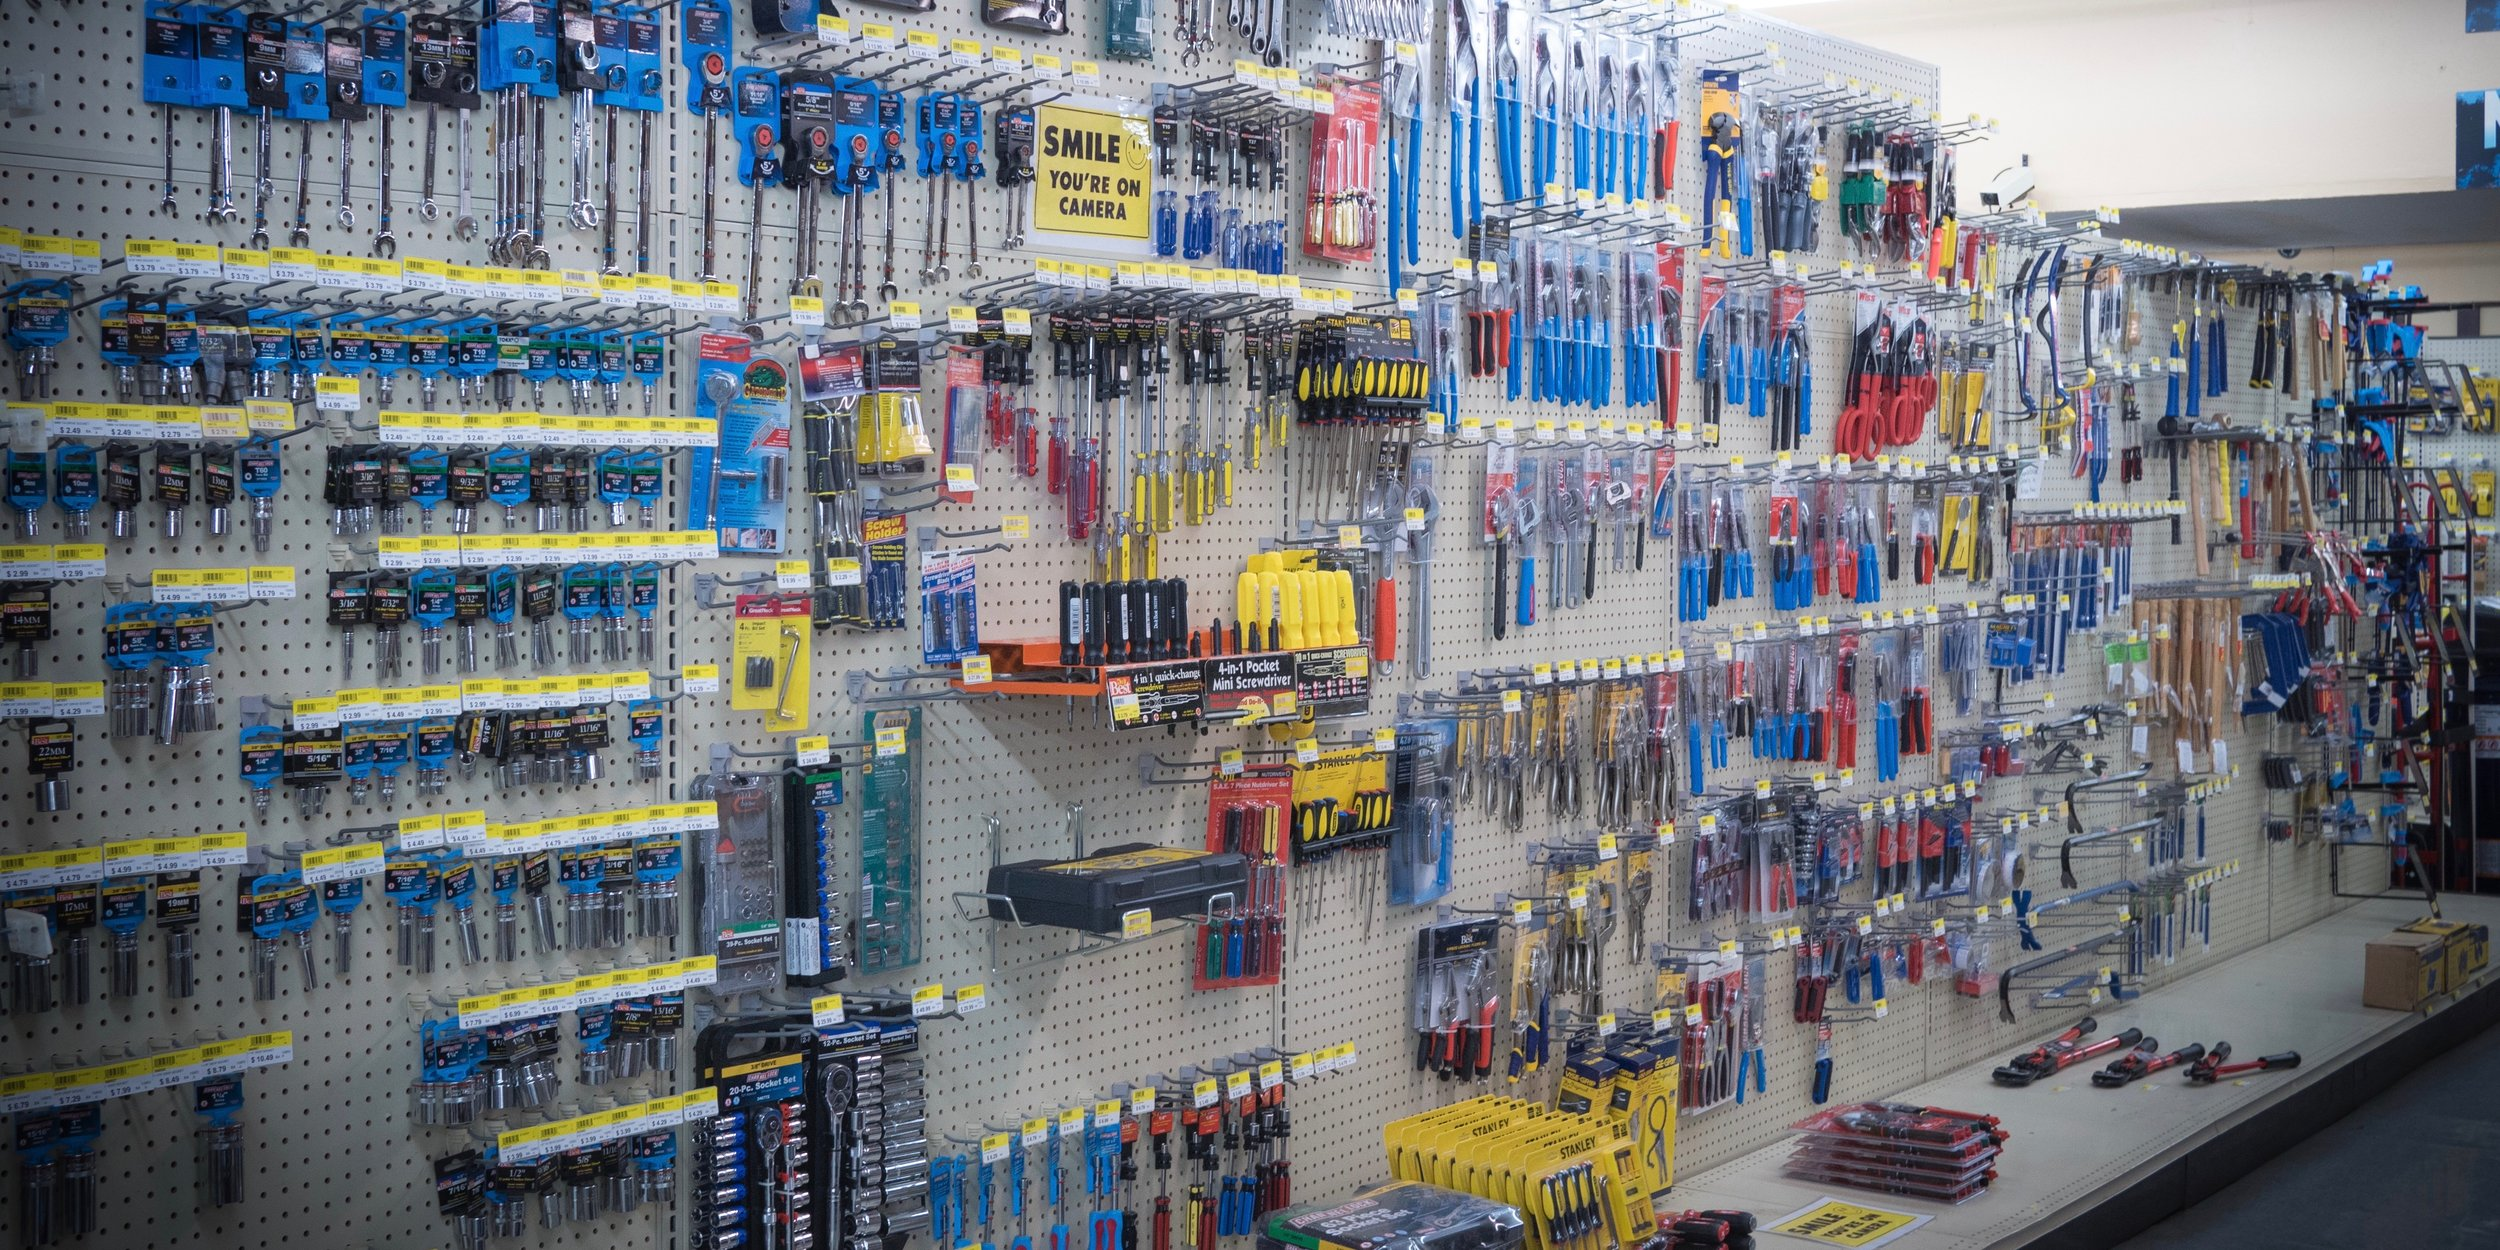 Hand Tools, Hammers, Drivers, saws, and more.